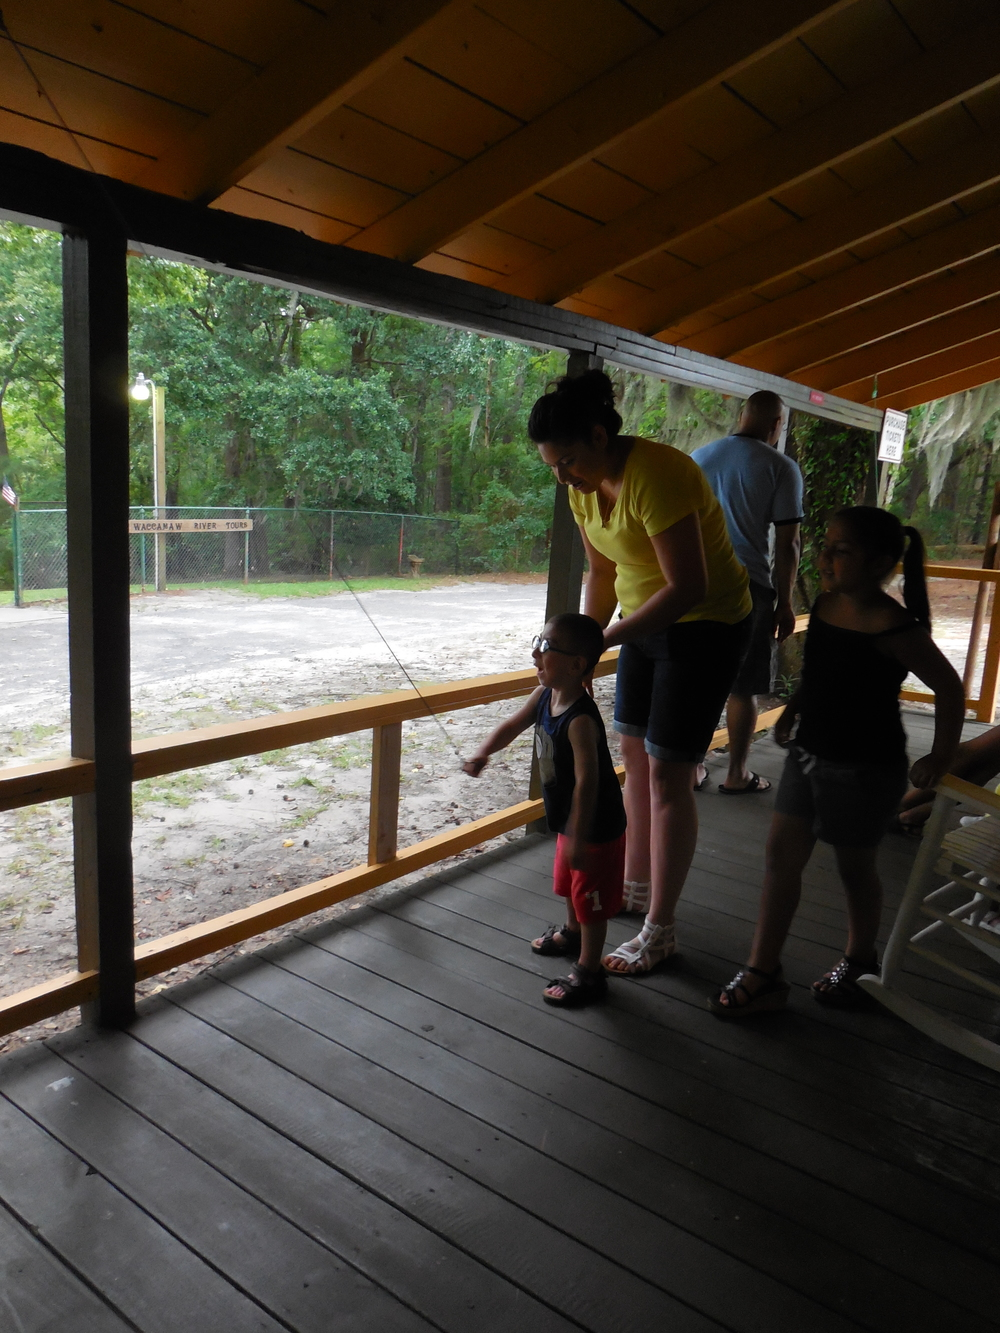 Customers enjoying the swing ring game when checking-in at Waccamaw River Tours.  Plenty of games and things to do before you board for the boat tour.